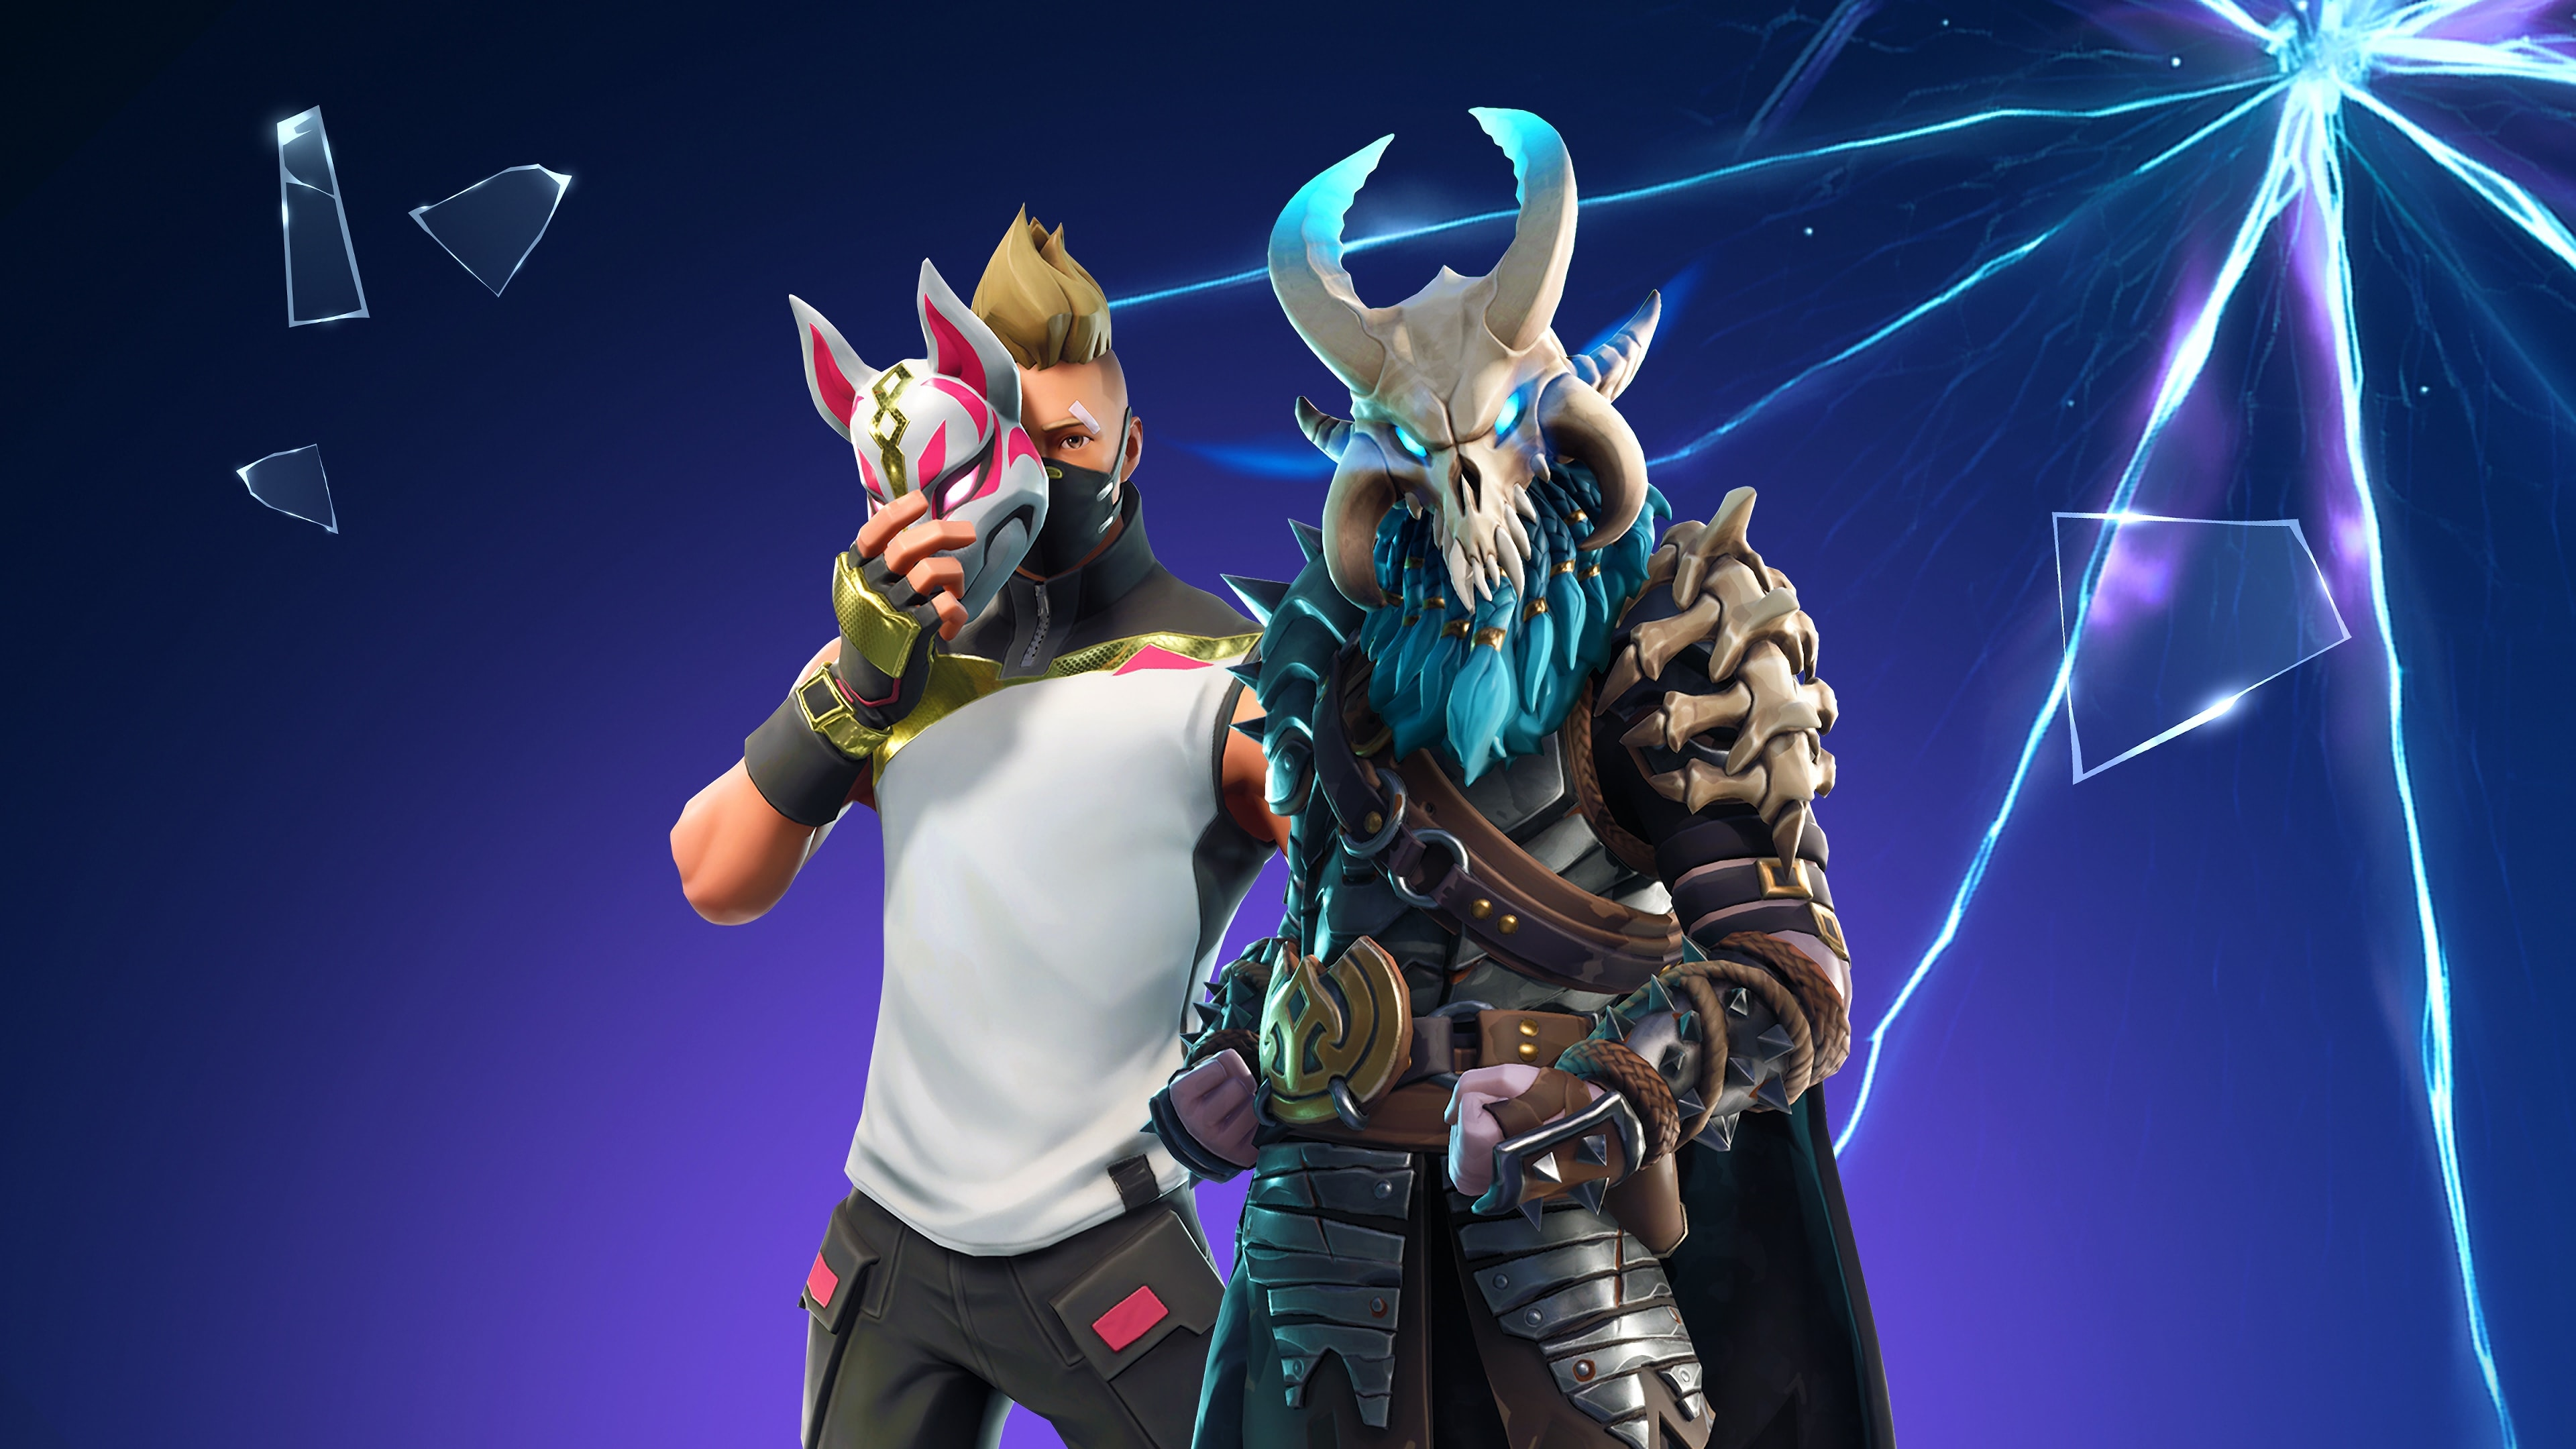 fortnite season 5 hd wallpaper 64804